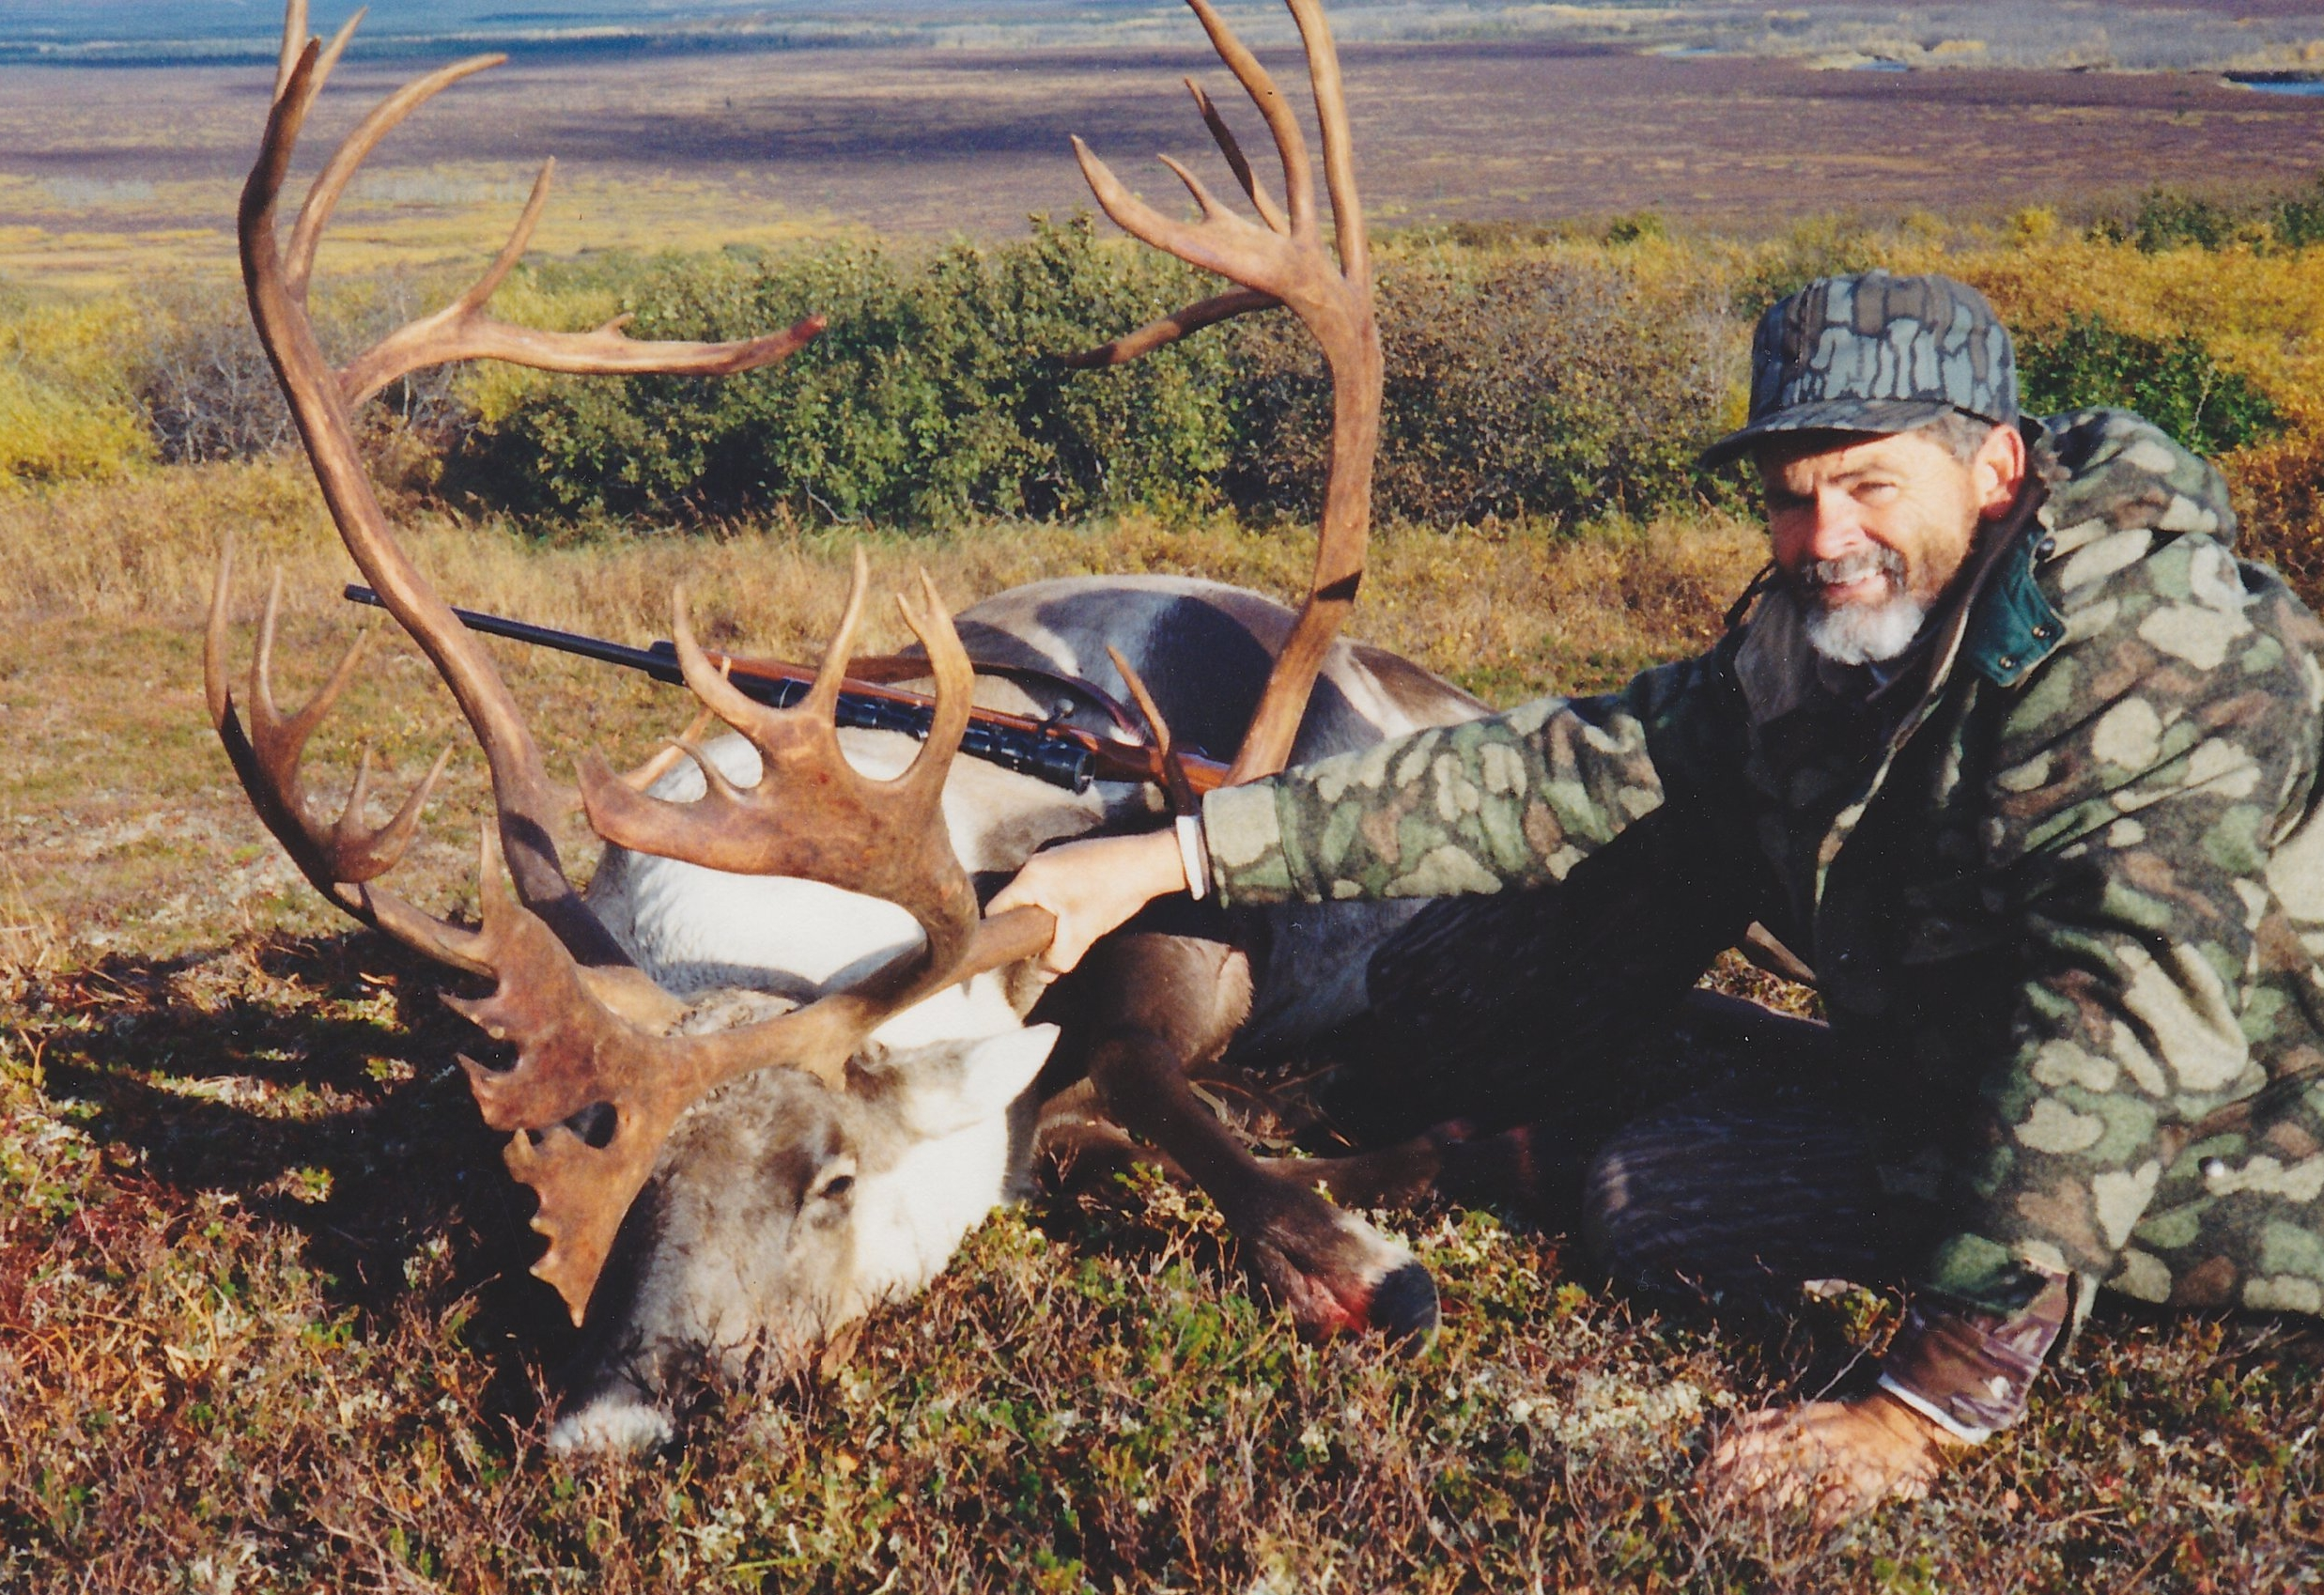 Larry Berry of MO with his beautiful 421 B&C caribou. I don't think this picture does this caribou justice. It was really a monster. Larry was guided by Steve Lanphier.